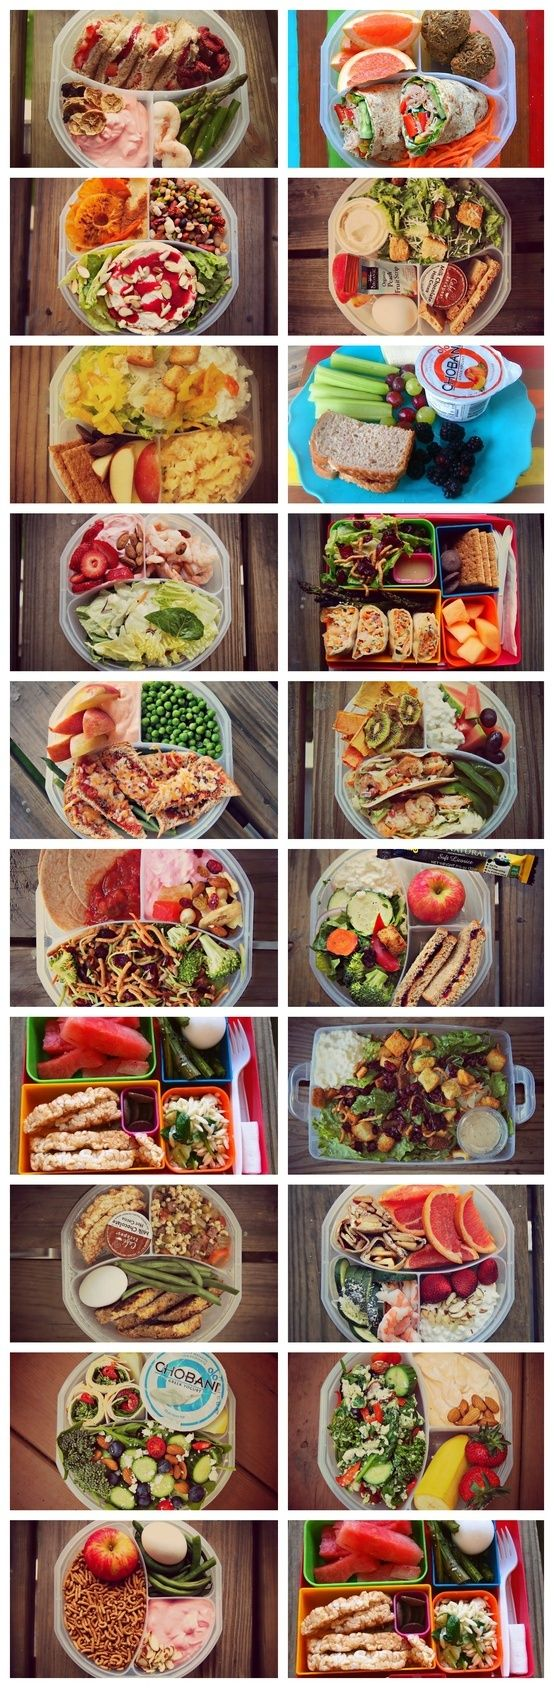 Healthy Lunch Ideas to Pack